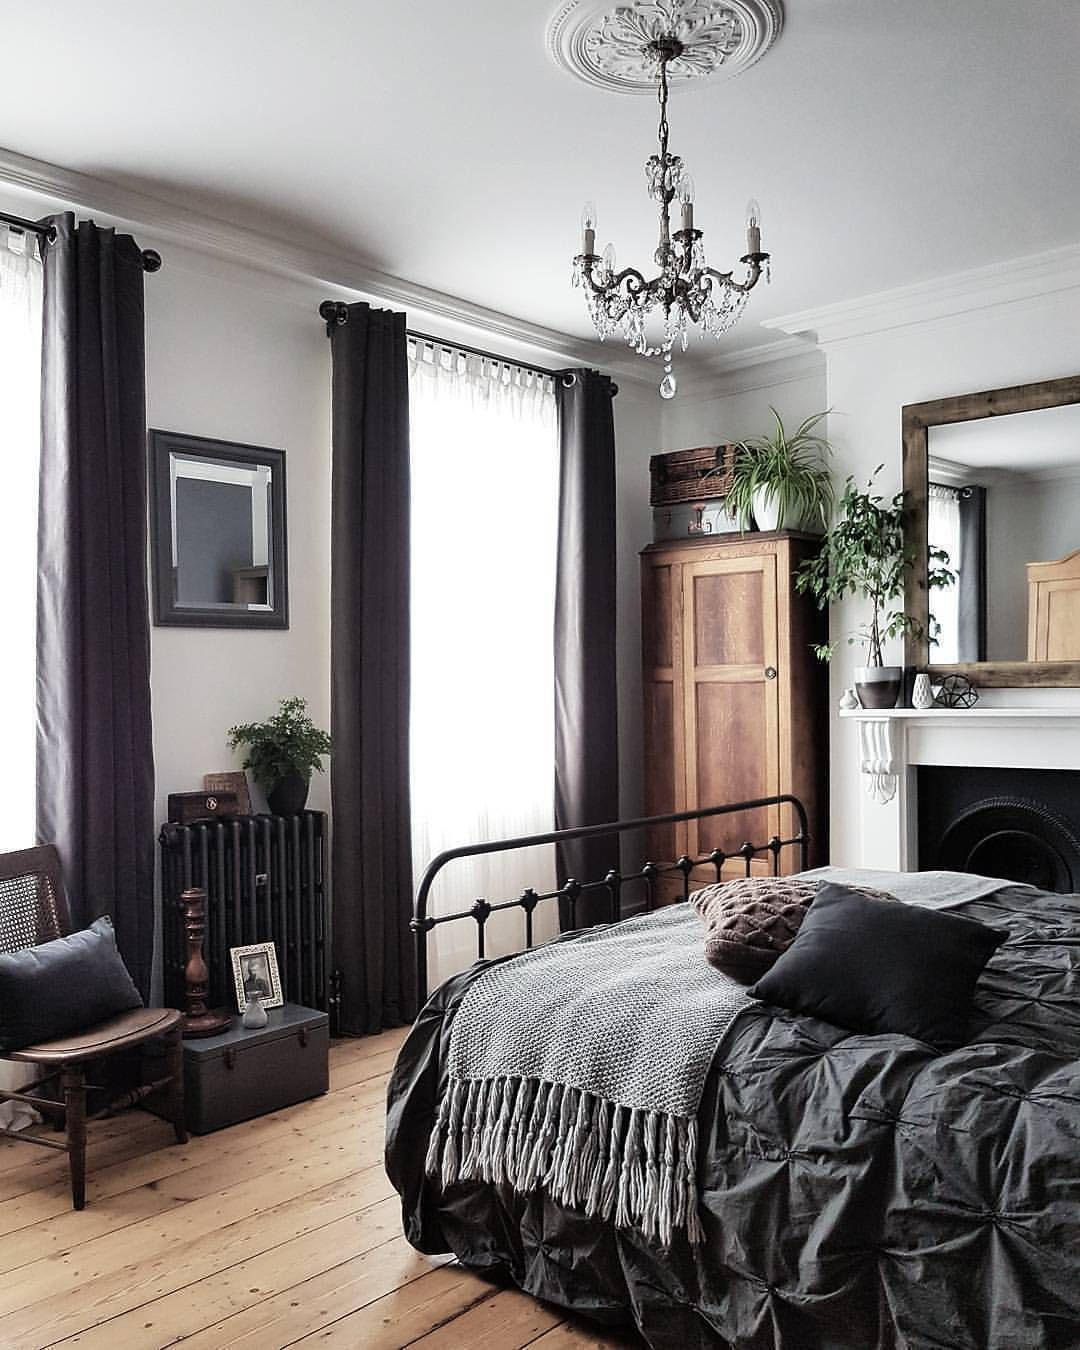 Chambre gris et Blanc cassé | BLACK-WHITE-GREY-TAN | Pinterest ...